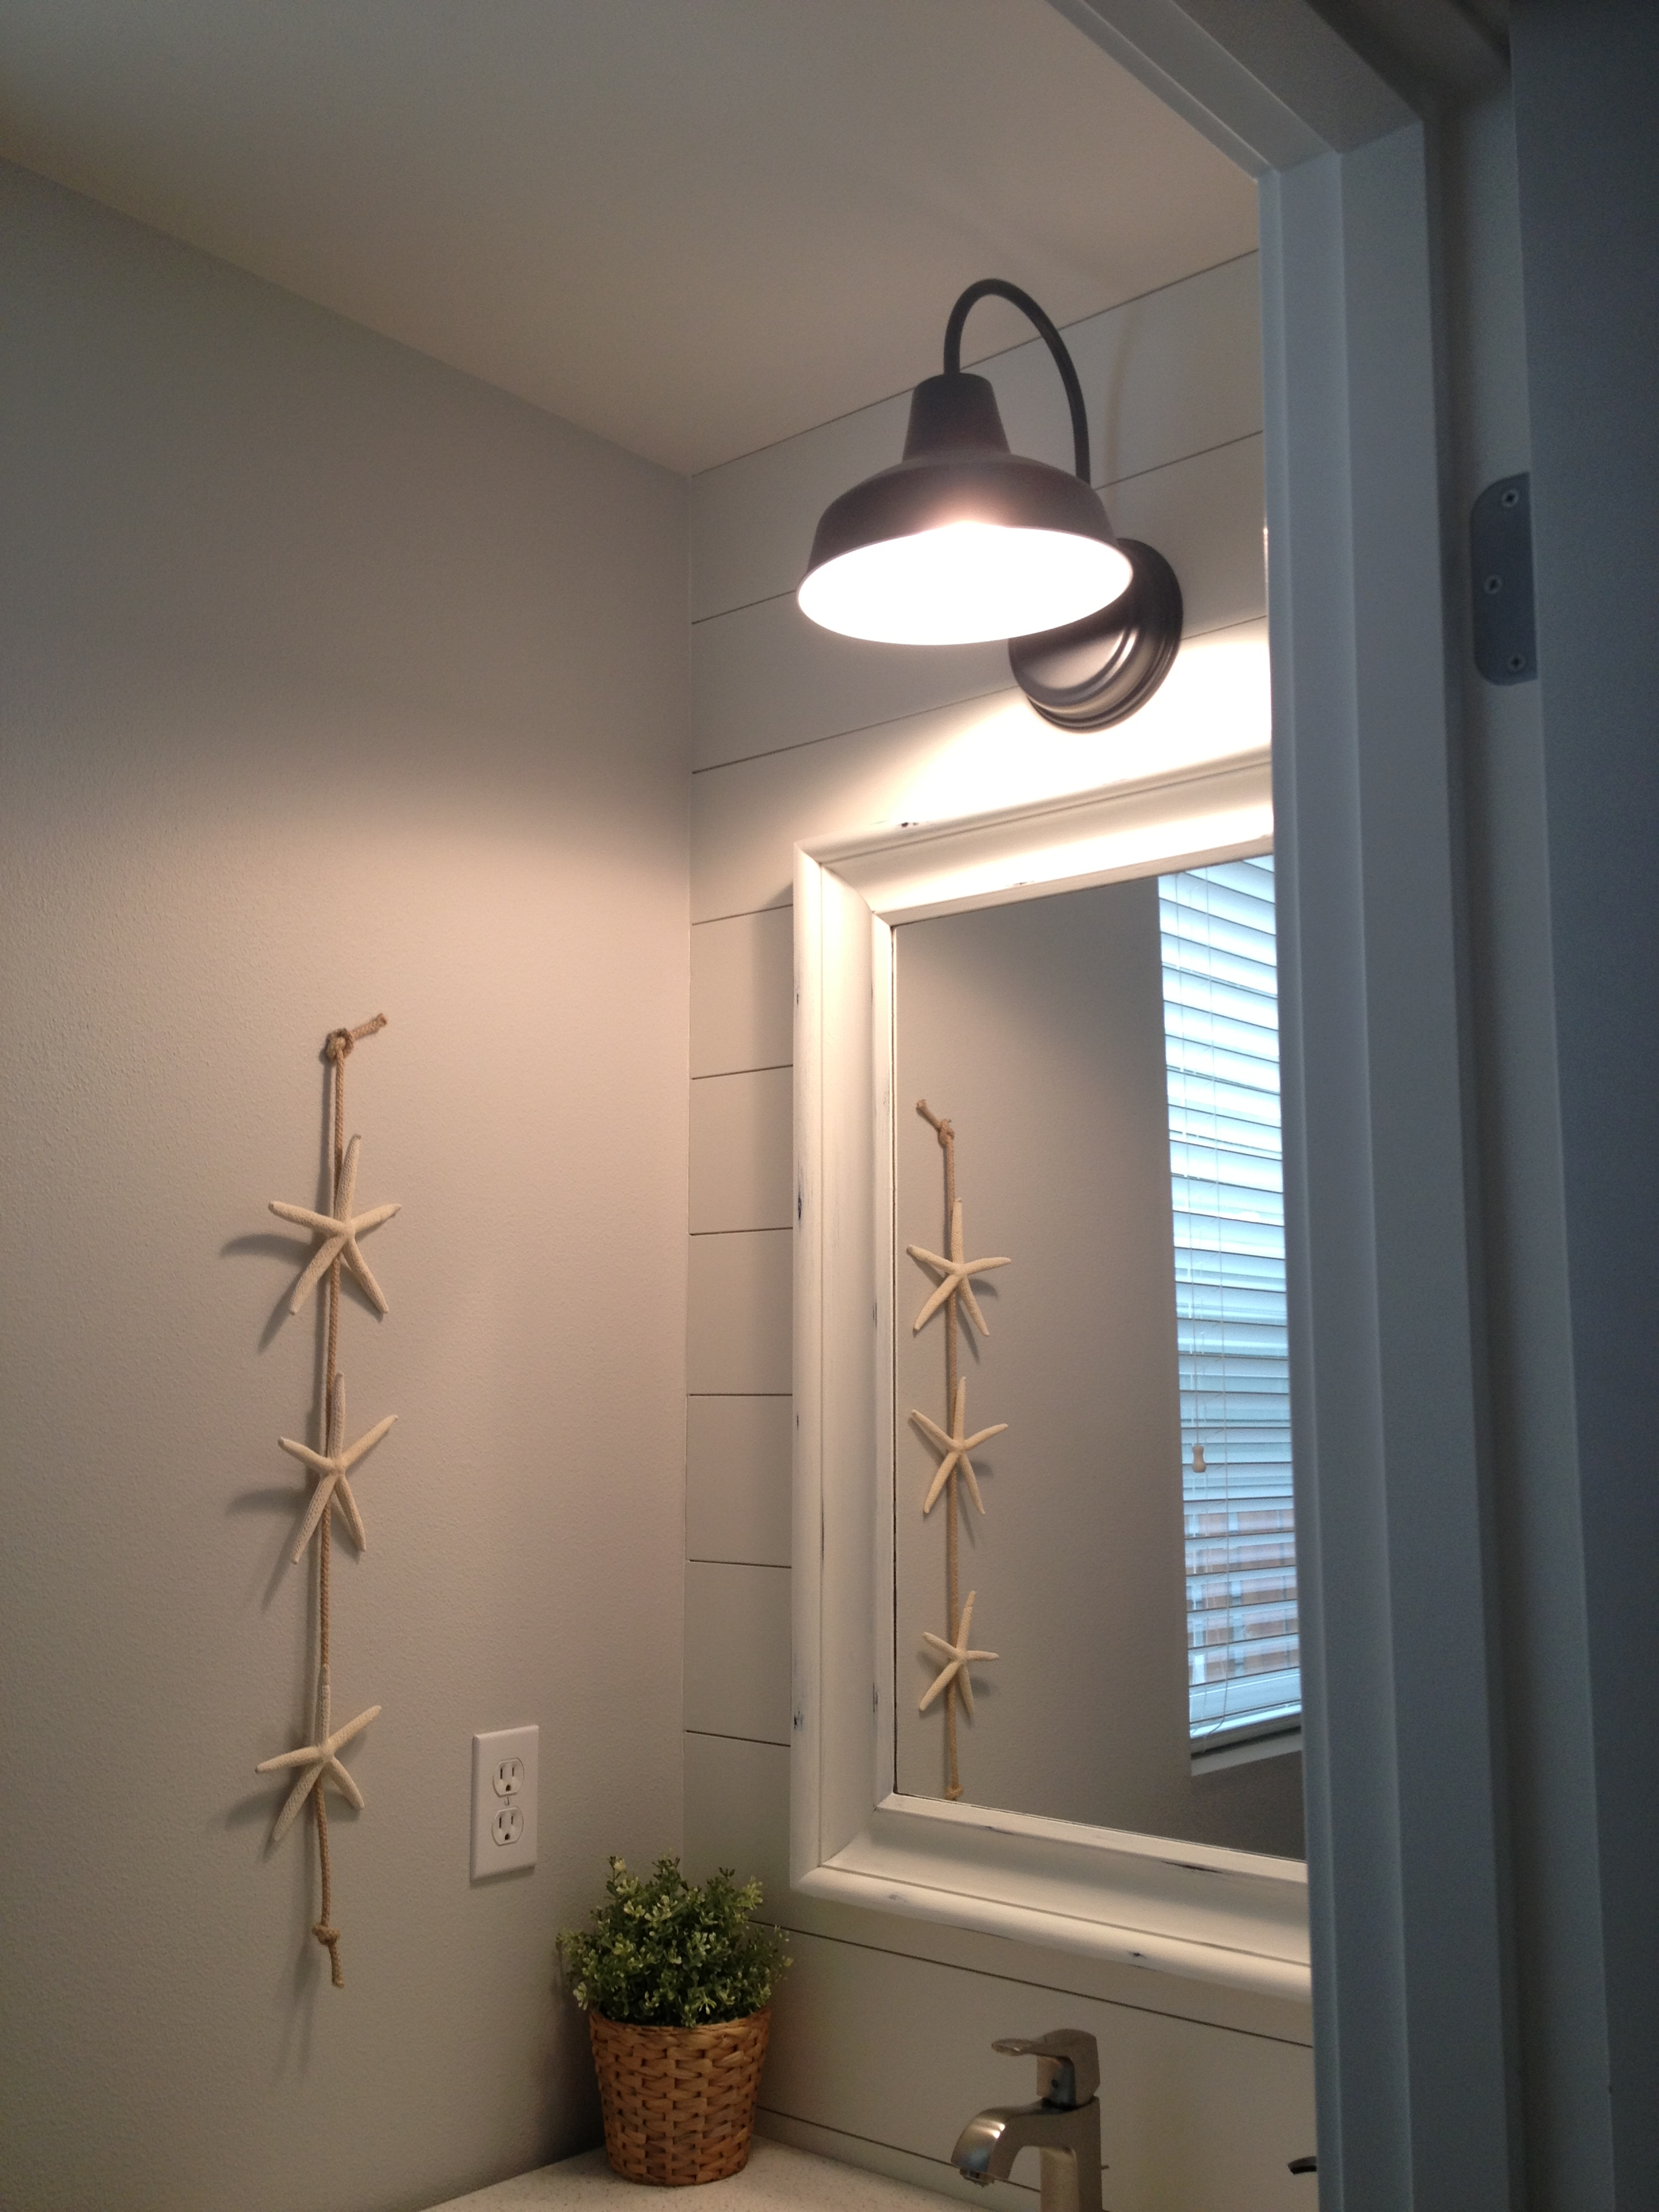 Barn Wall Sconce Lends Farmhouse Look To Powder Room Remake Blog BarnLigh